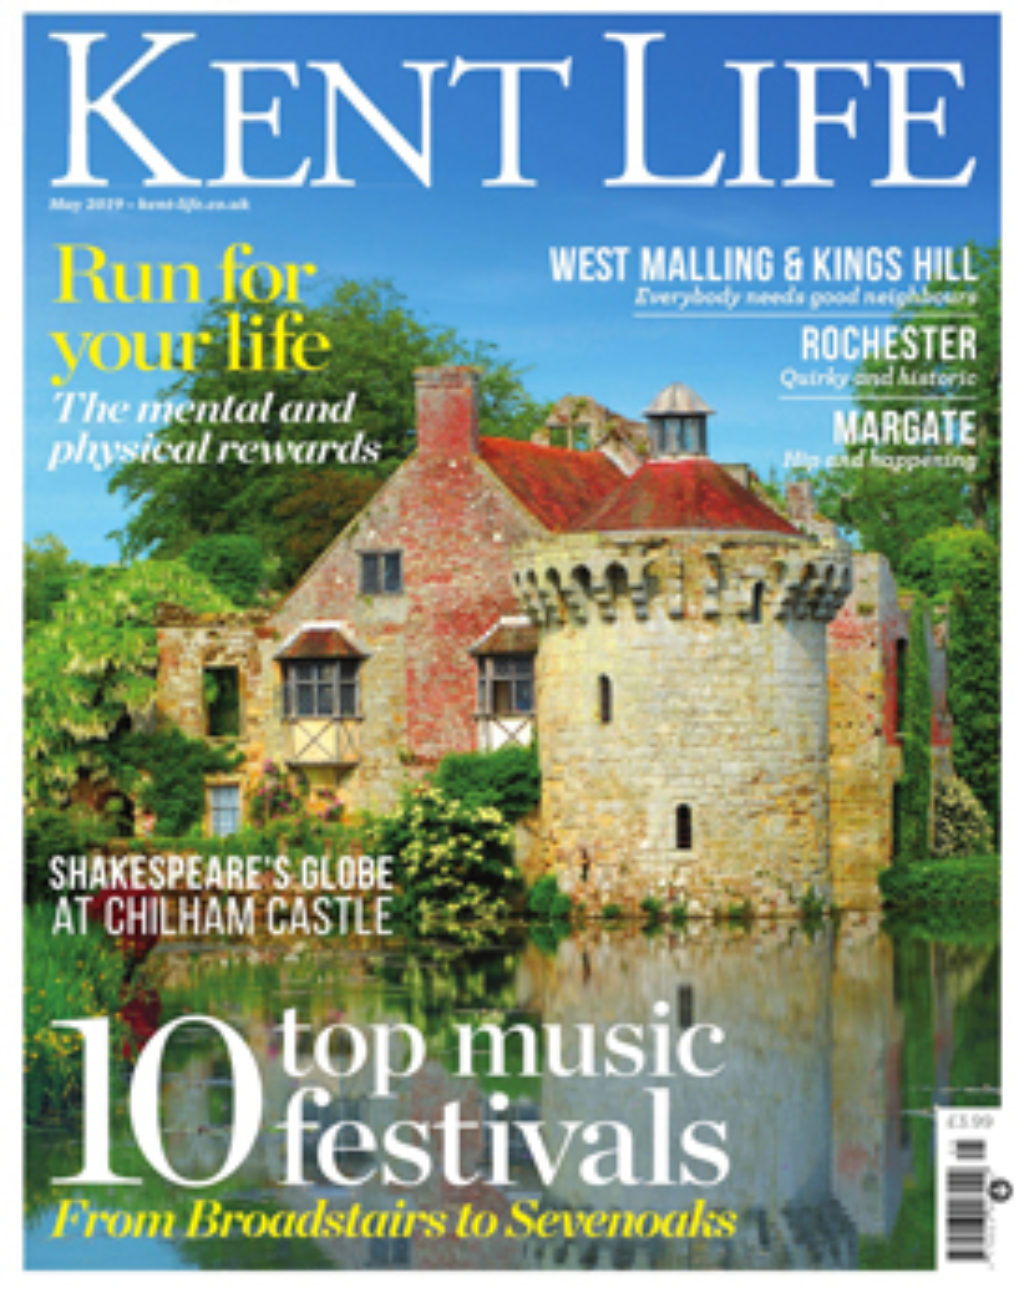 Kent Life May 2019 Cover